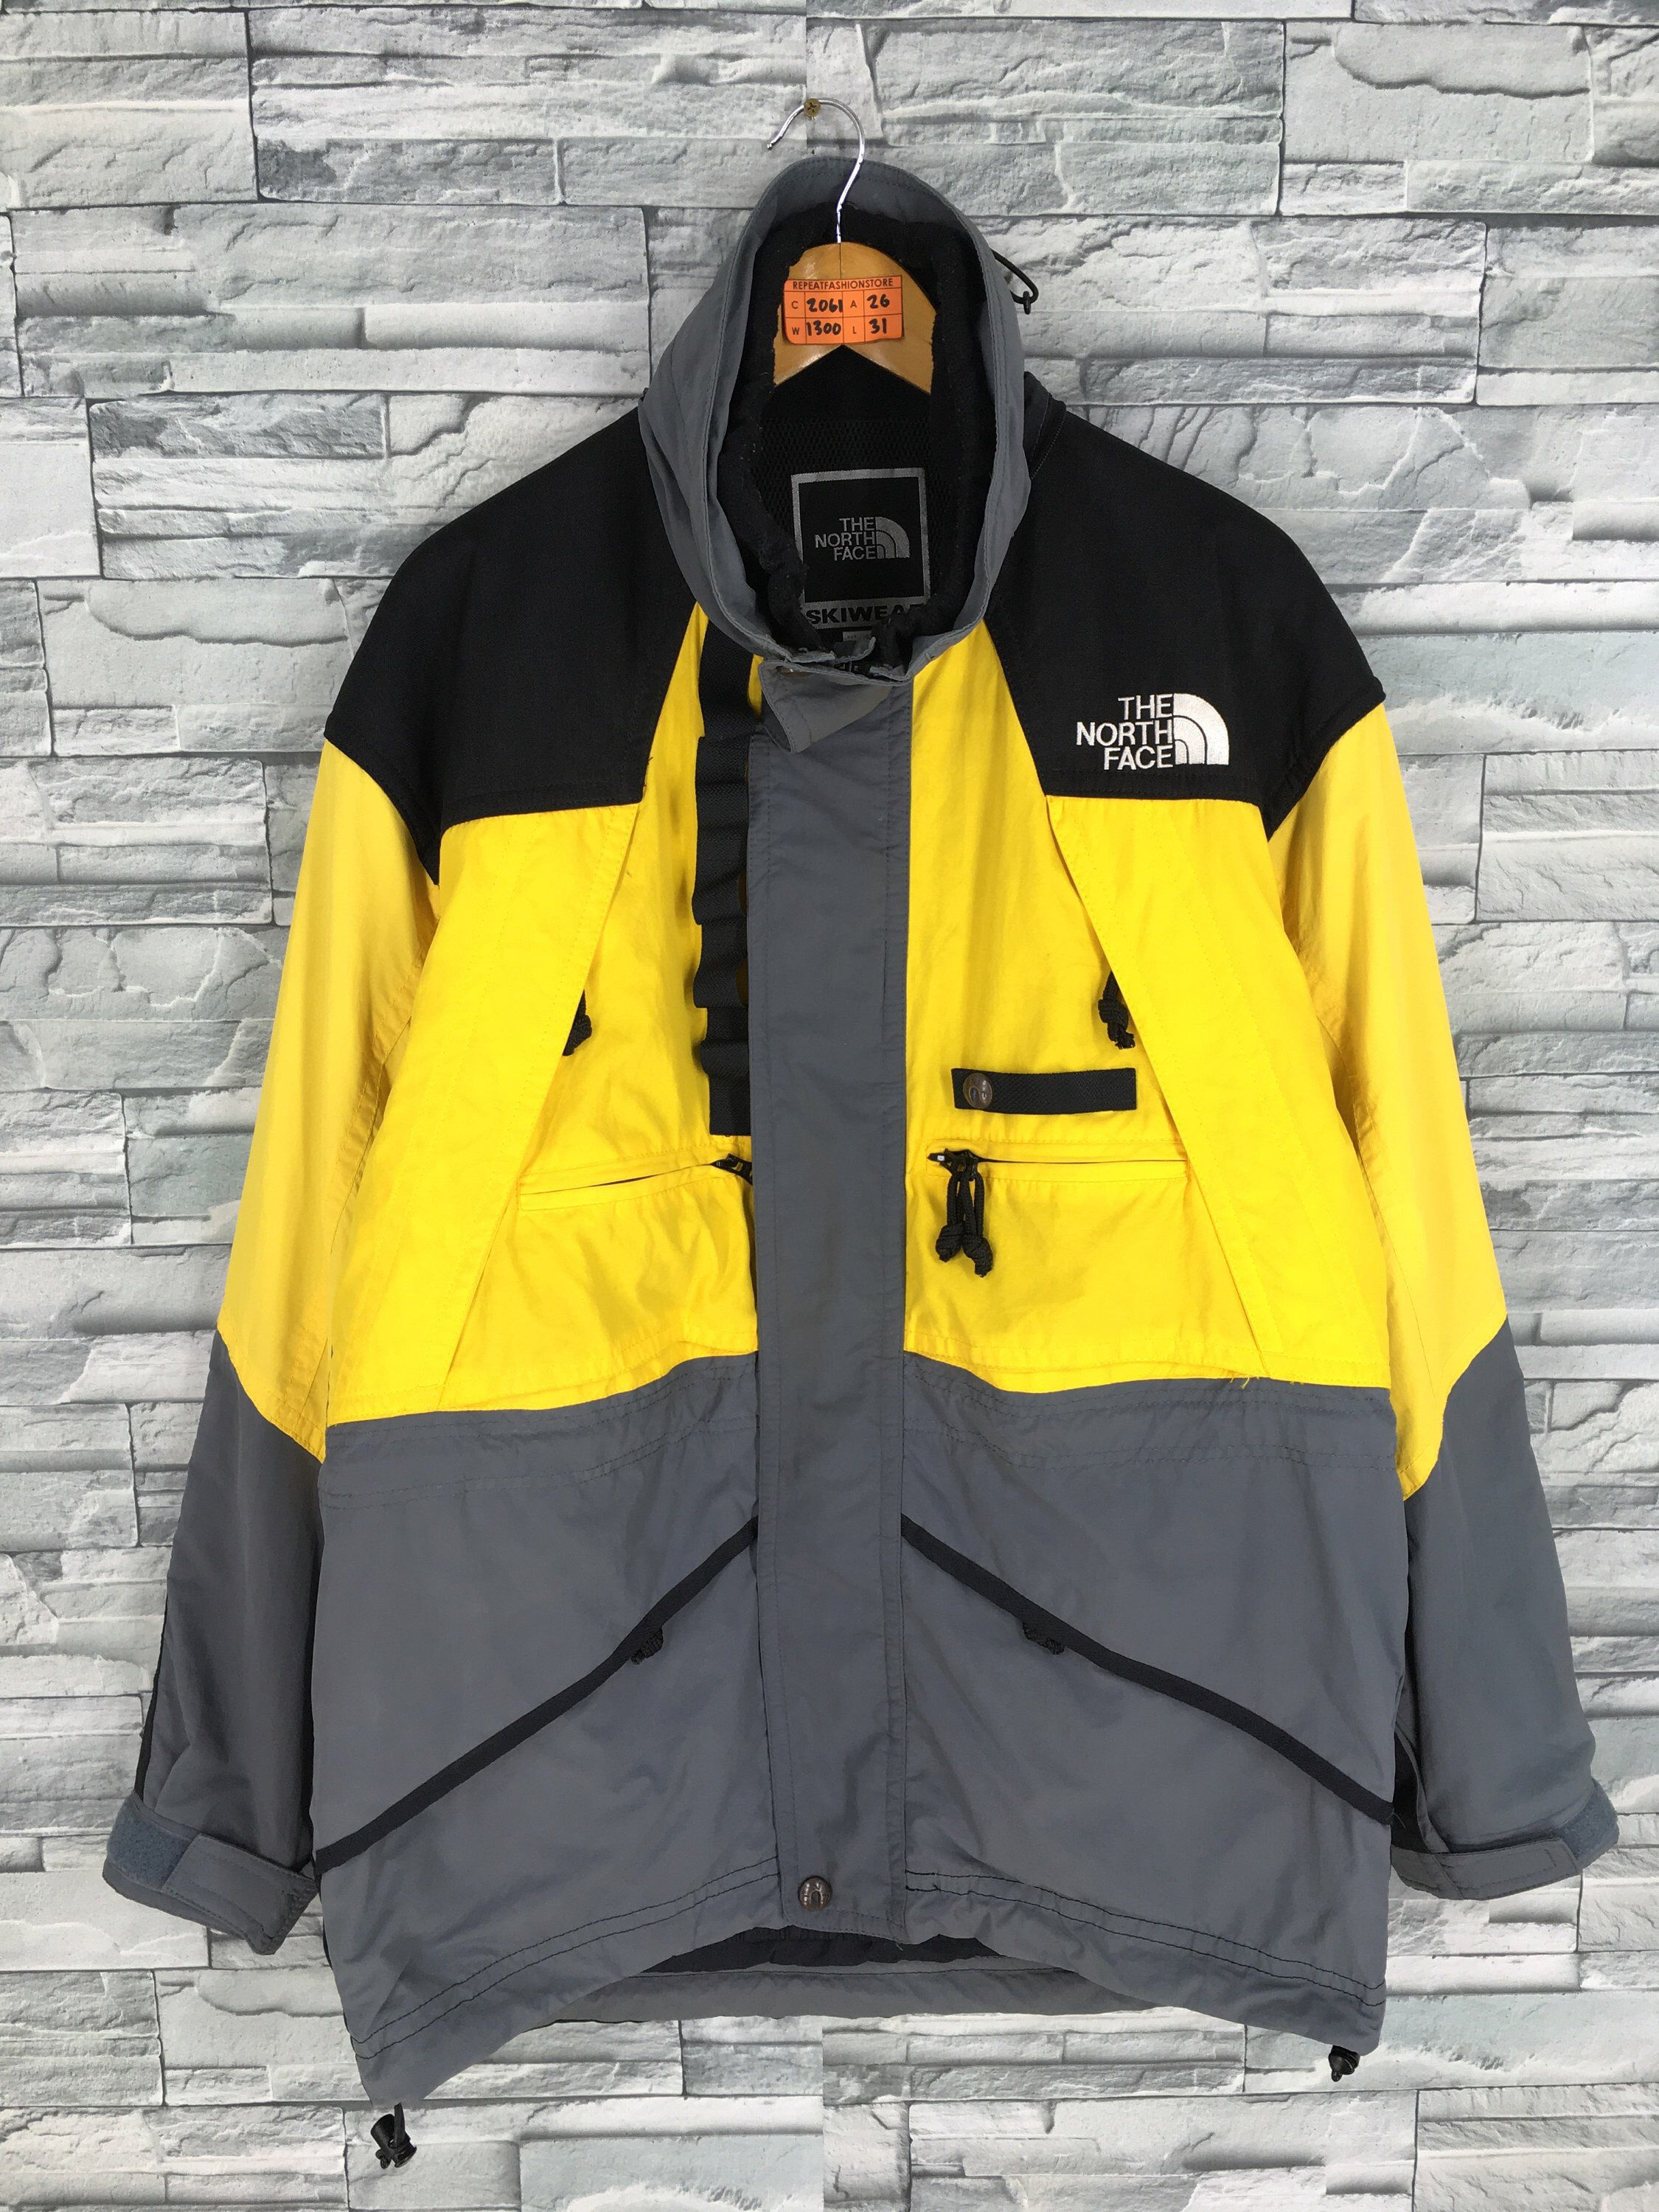 Excited To Share This Item From My Etsy Shop The North Face Jacket Xlarge Vintage 90 S North Face Ski Wea North Face Jacket North Face Hoodie North Face Mens [ 3000 x 2250 Pixel ]